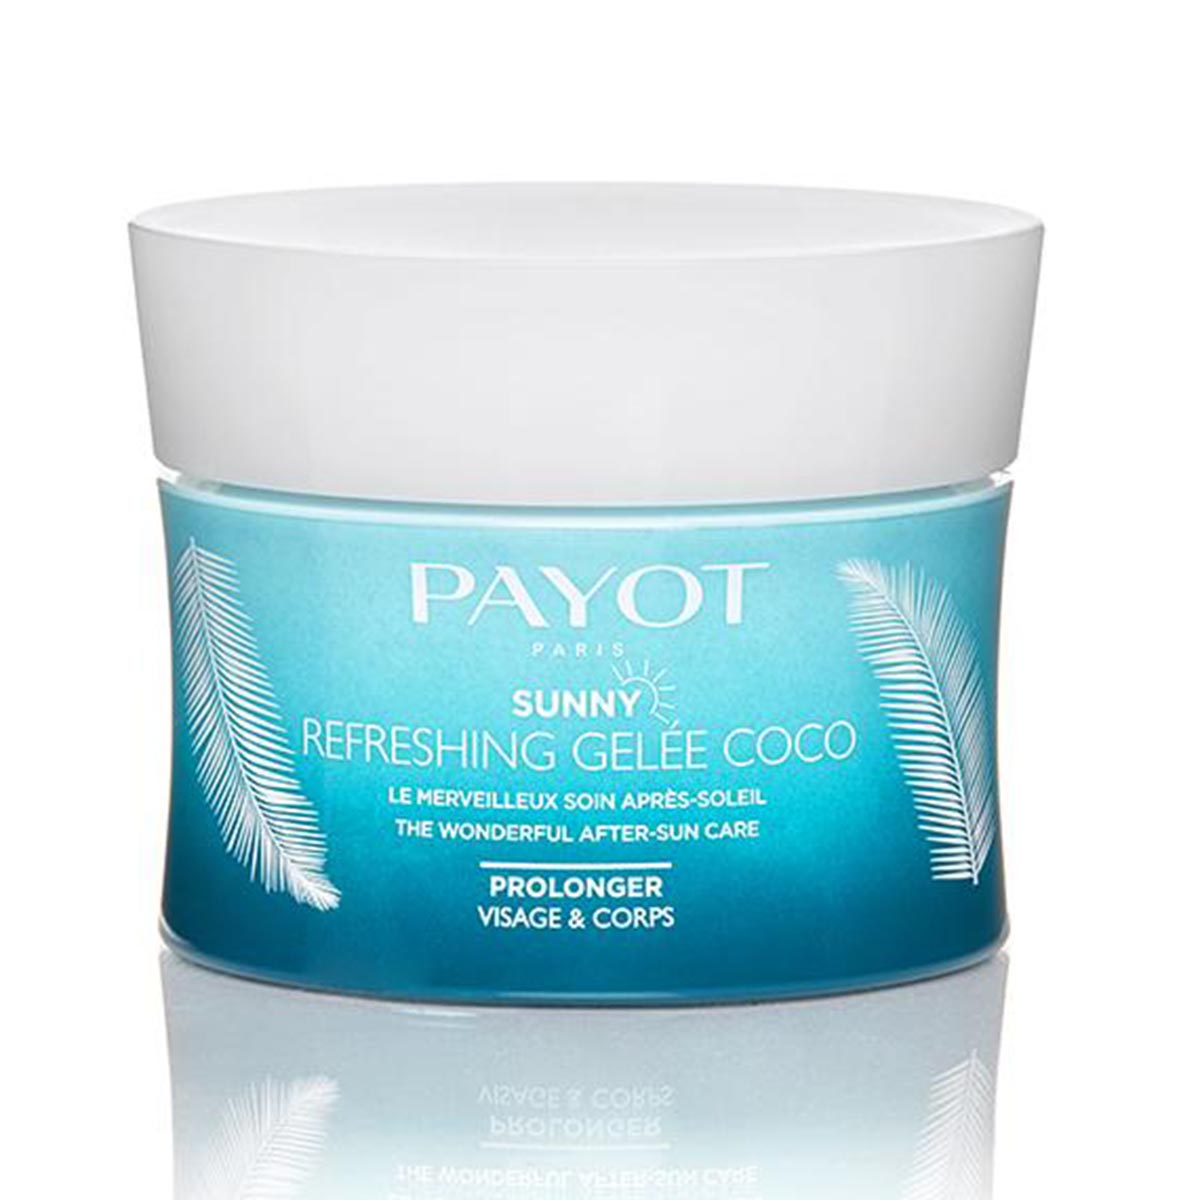 Payot sunny refreshing gelee coco after sun 200ml